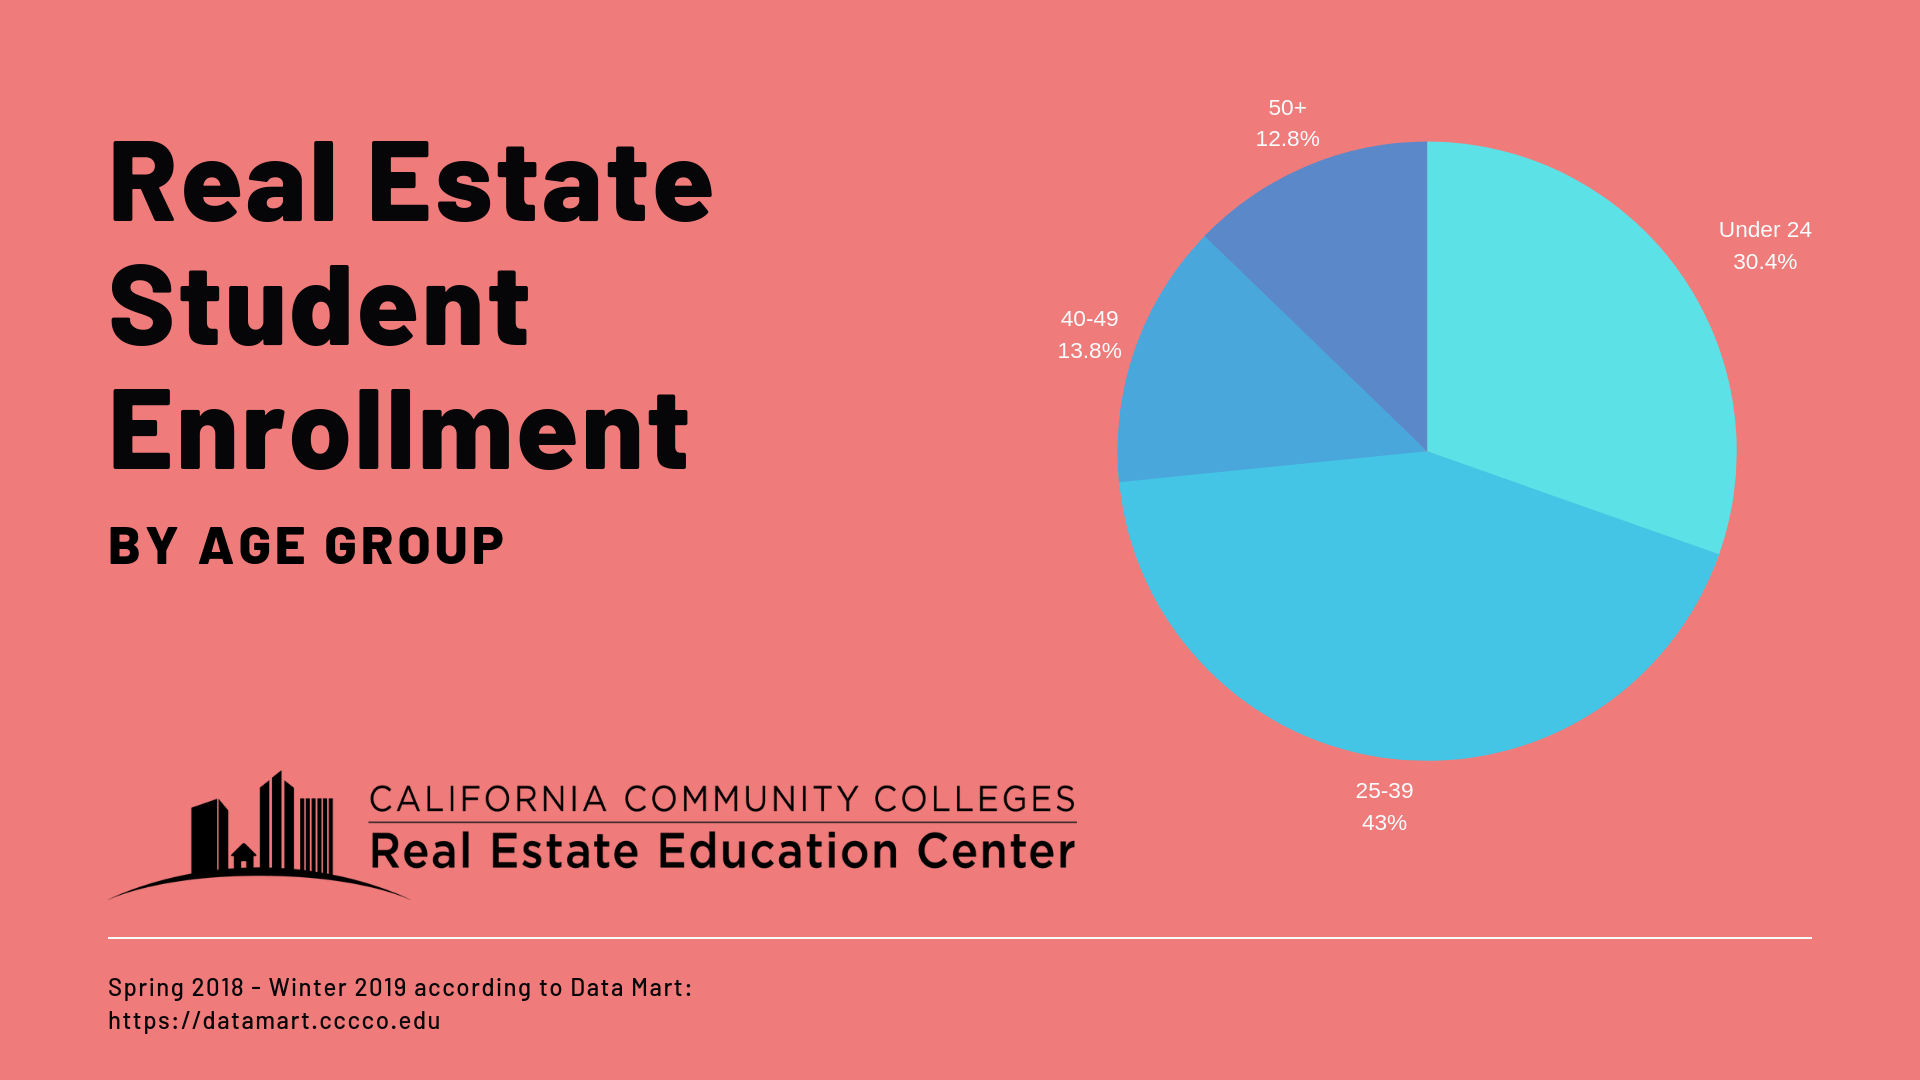 California Community Colleges real estate students for Spring 2018-Winter 2019 are 30% Under 24, 43% 25-39, 14% 40-49, and 13% 50+